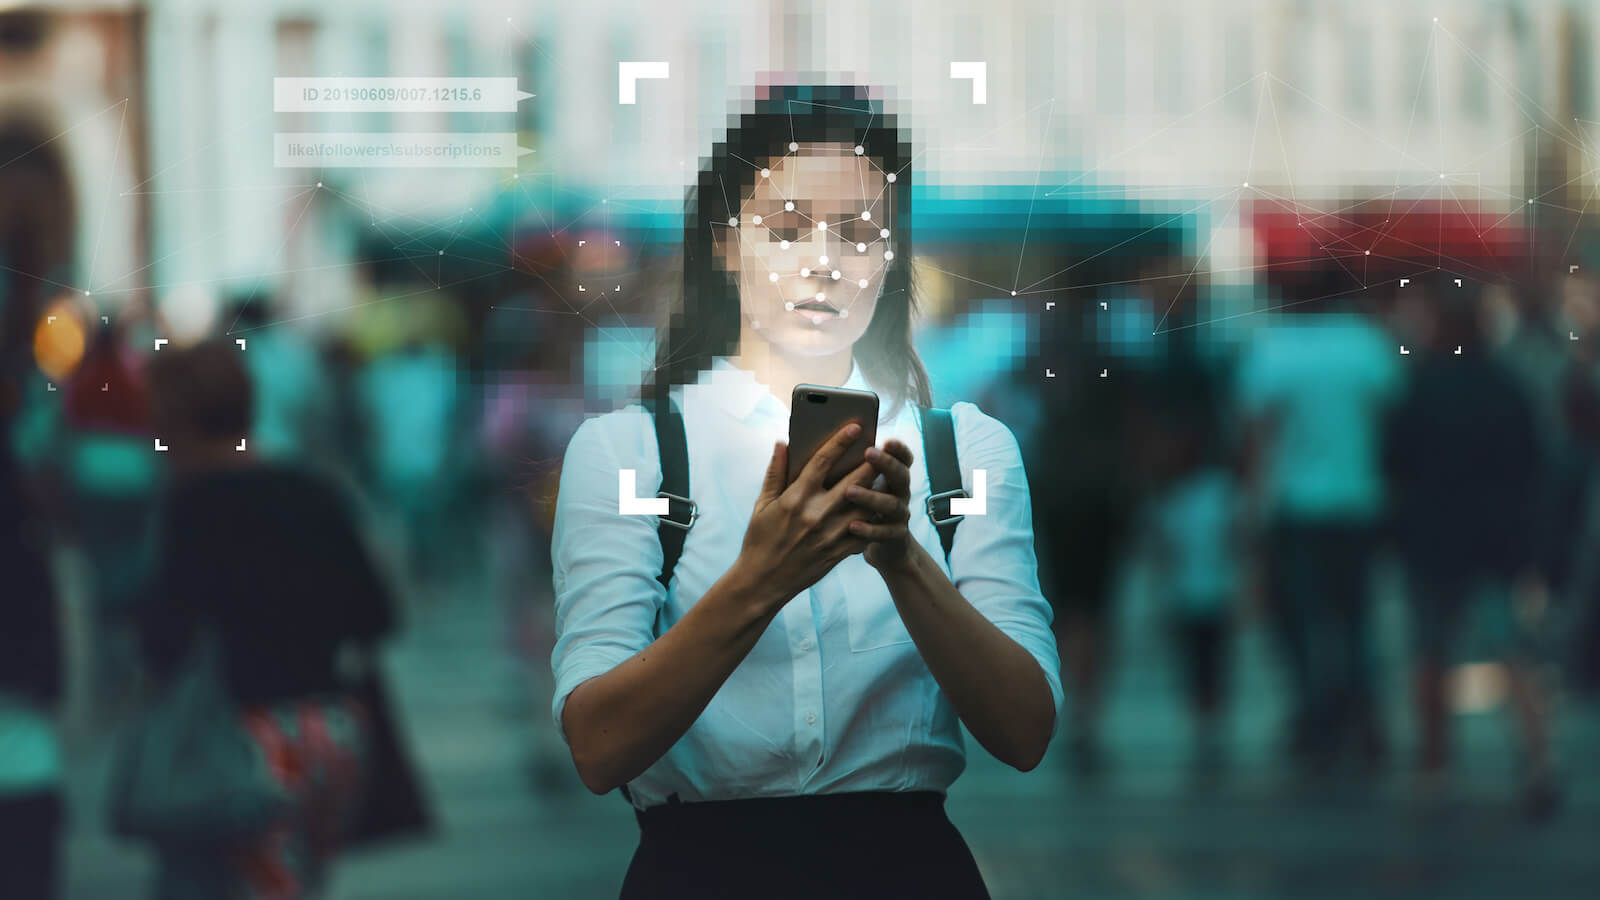 Automated data capture systems: facial recognition